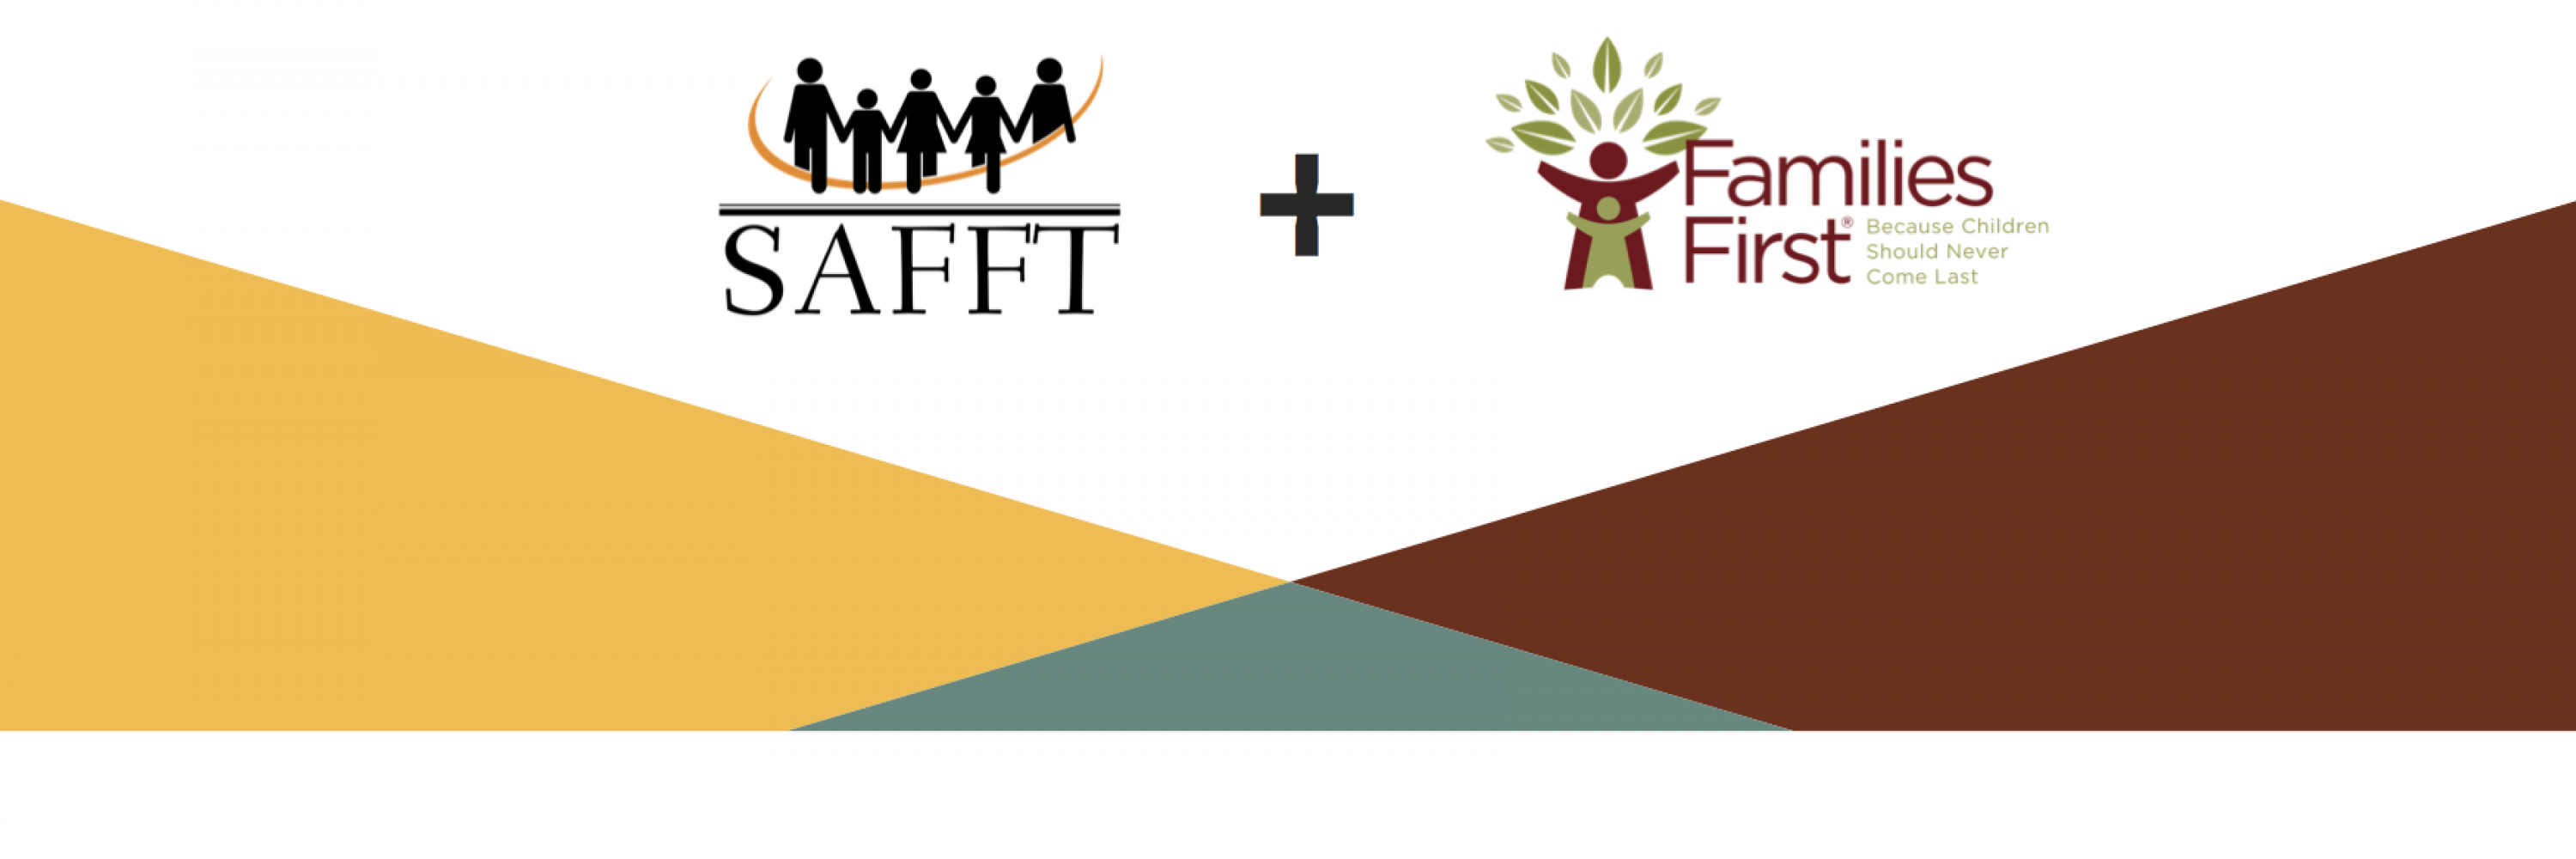 Safft partners with Families First